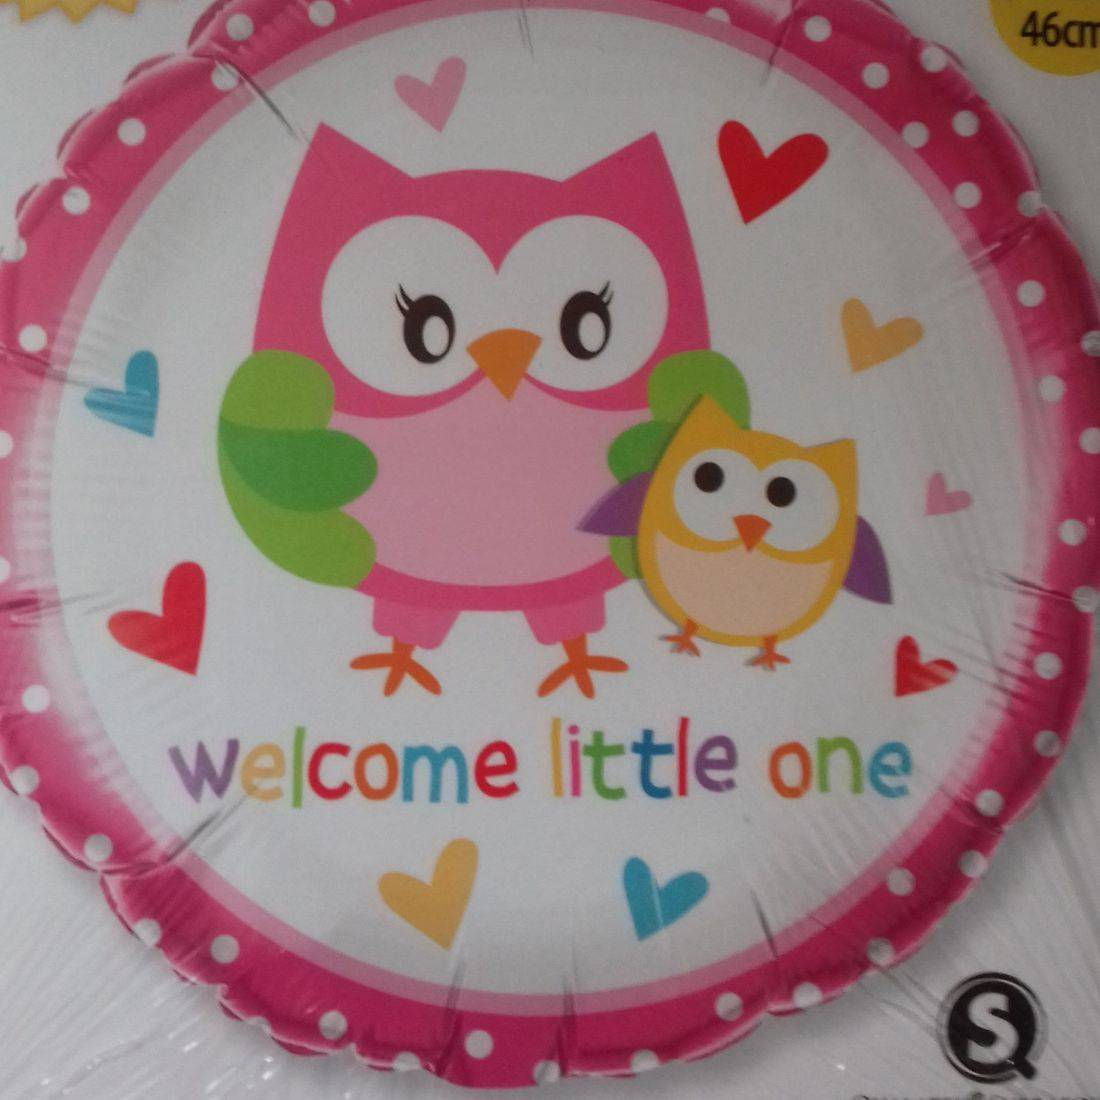 WELCOME LITTE ONE FOIL BALLOON